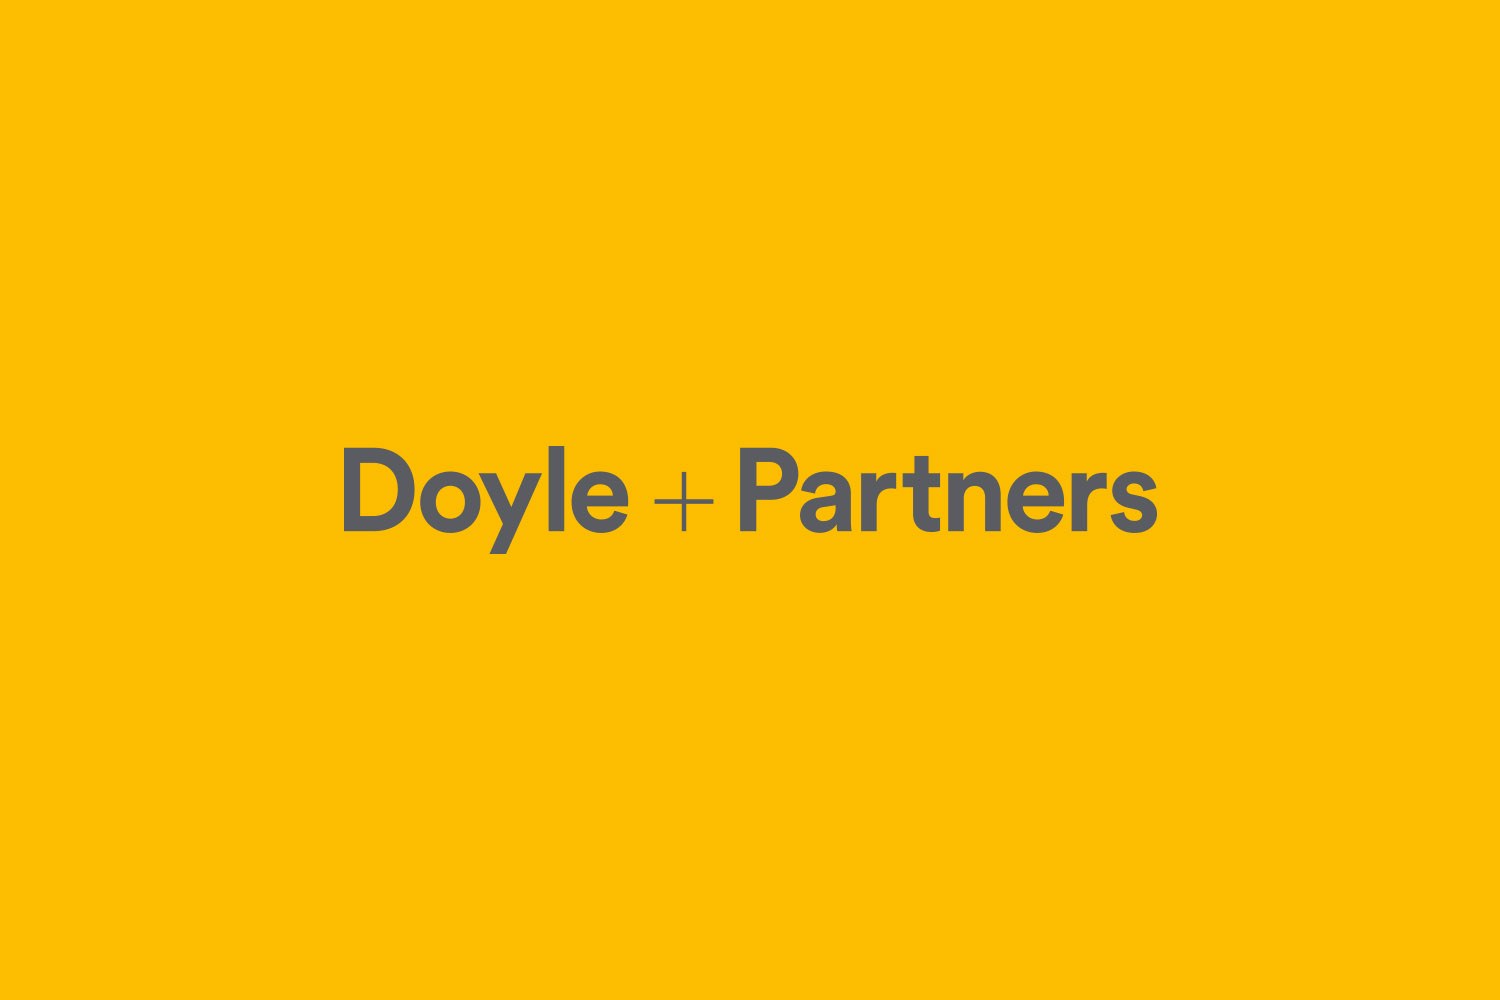 Cover image: Doyle + Partners